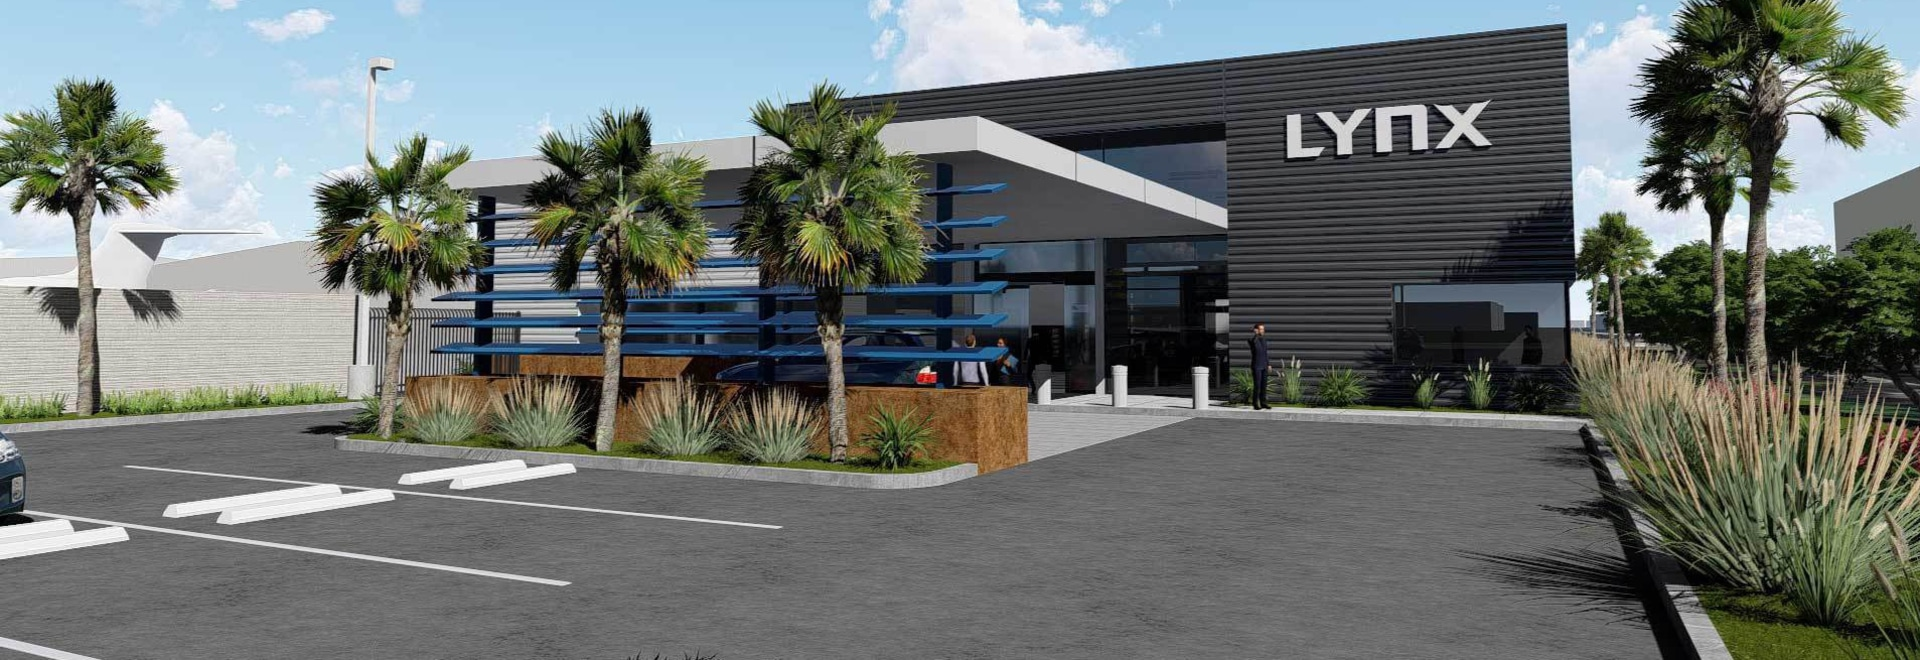 Lynx FBO Network has big plans for its latest FBO acquisition at Florida's Fort Lauderdale Executive Airport. As shown in this rendering, the company is planning a new terminal that will roughly do...